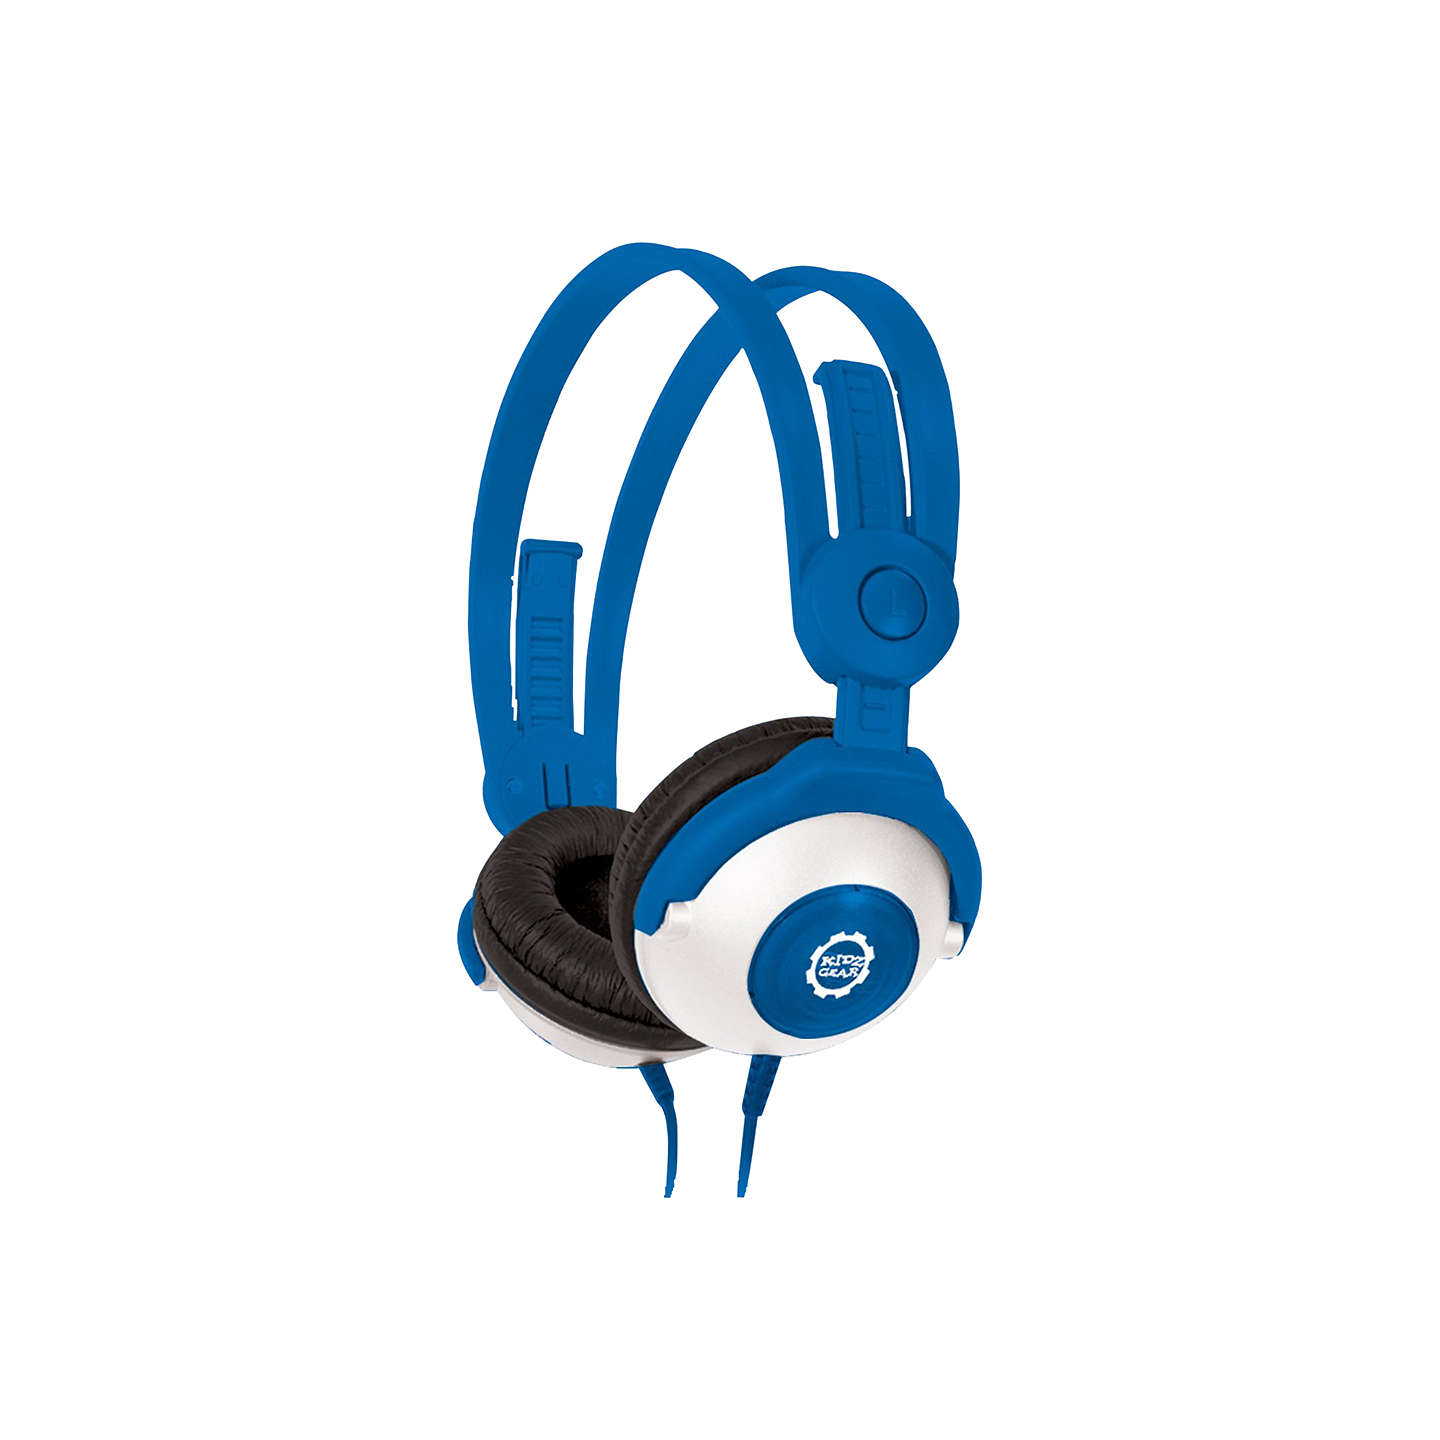 BuyKidz Gear Volume Limiting On-Ear Headphones For Children, Blue Online at johnlewis.com